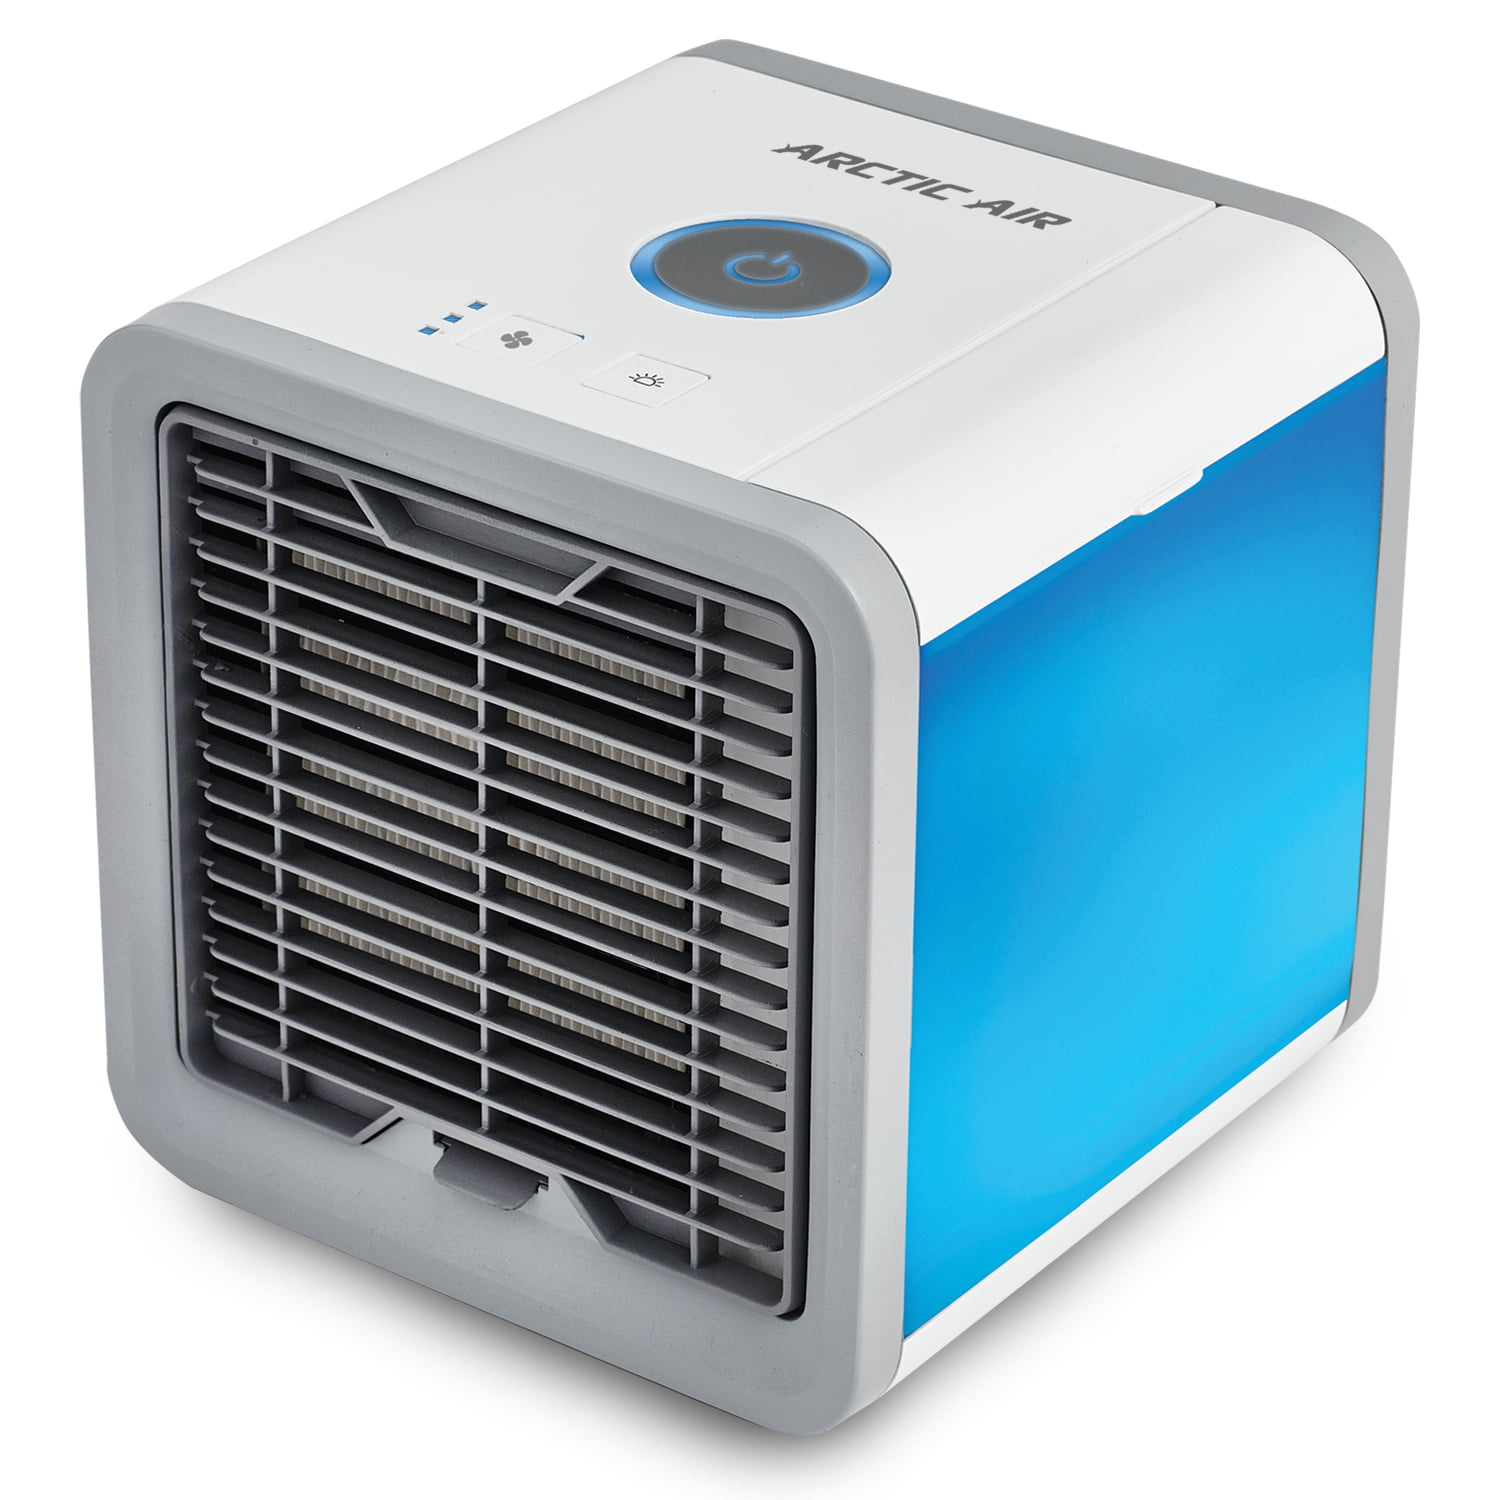 arctic air portable in home air cooler as seen on tv walmart com rh walmart com